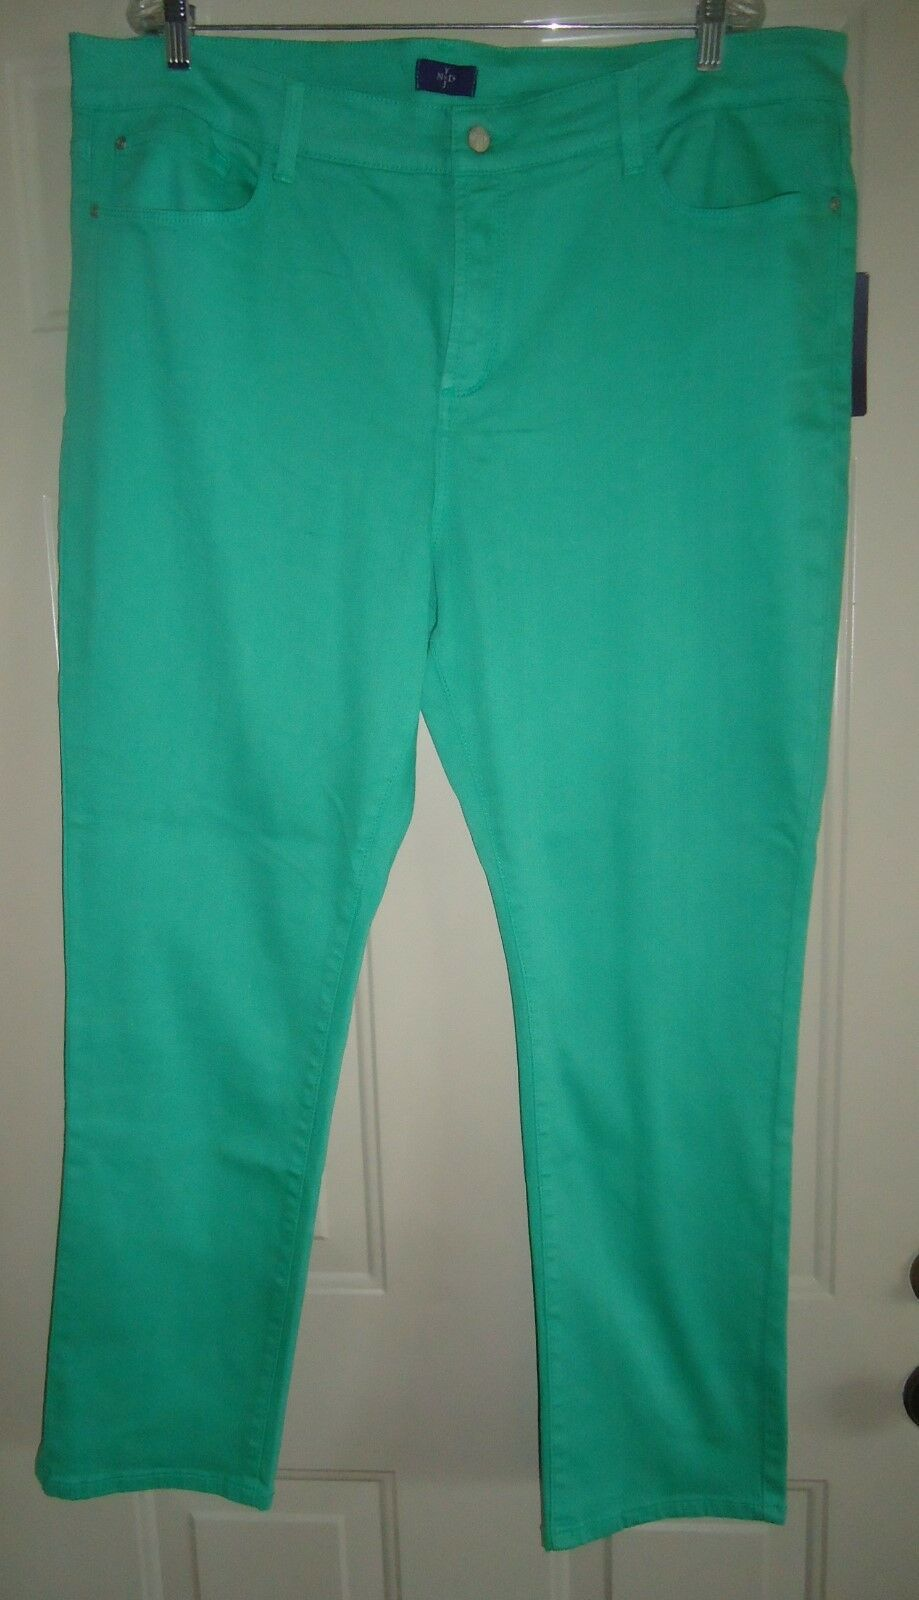 NWT-NYDJ NOT YOUR DAUGHTER'S JEANS green denim jeans pants sz 20W-NEW  F S